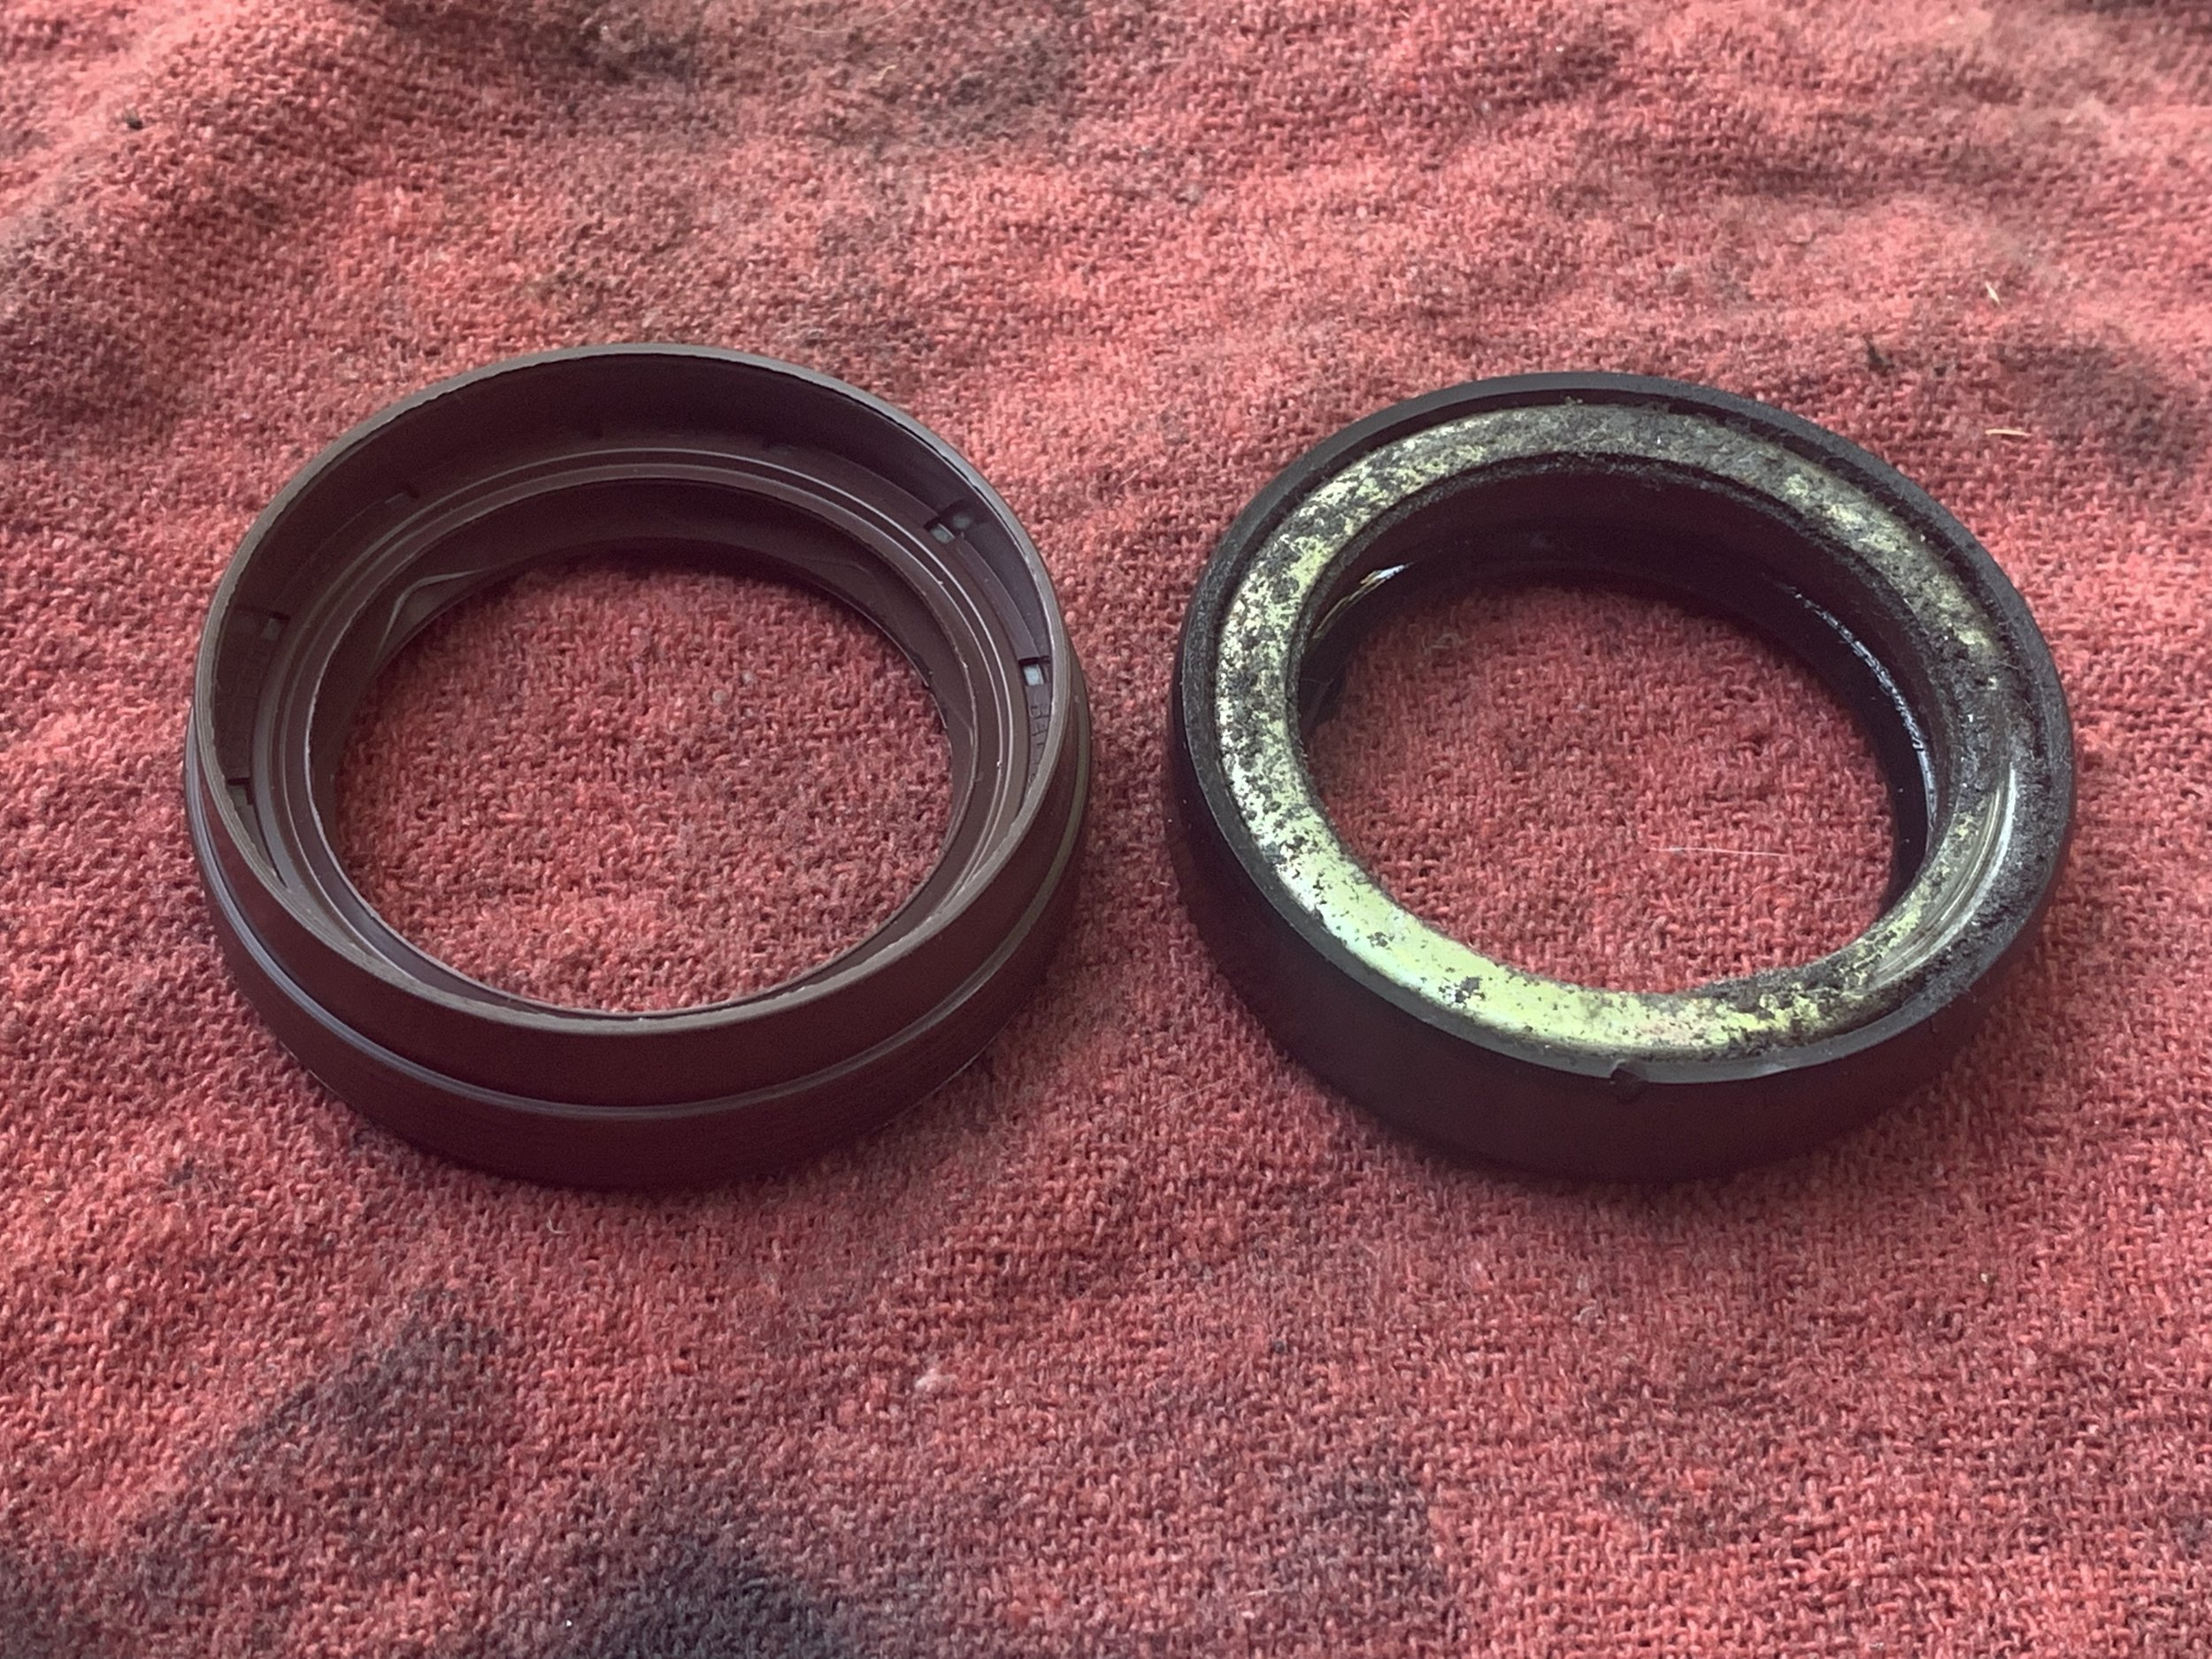 The new triple lip seal(left) and the original seal (right).